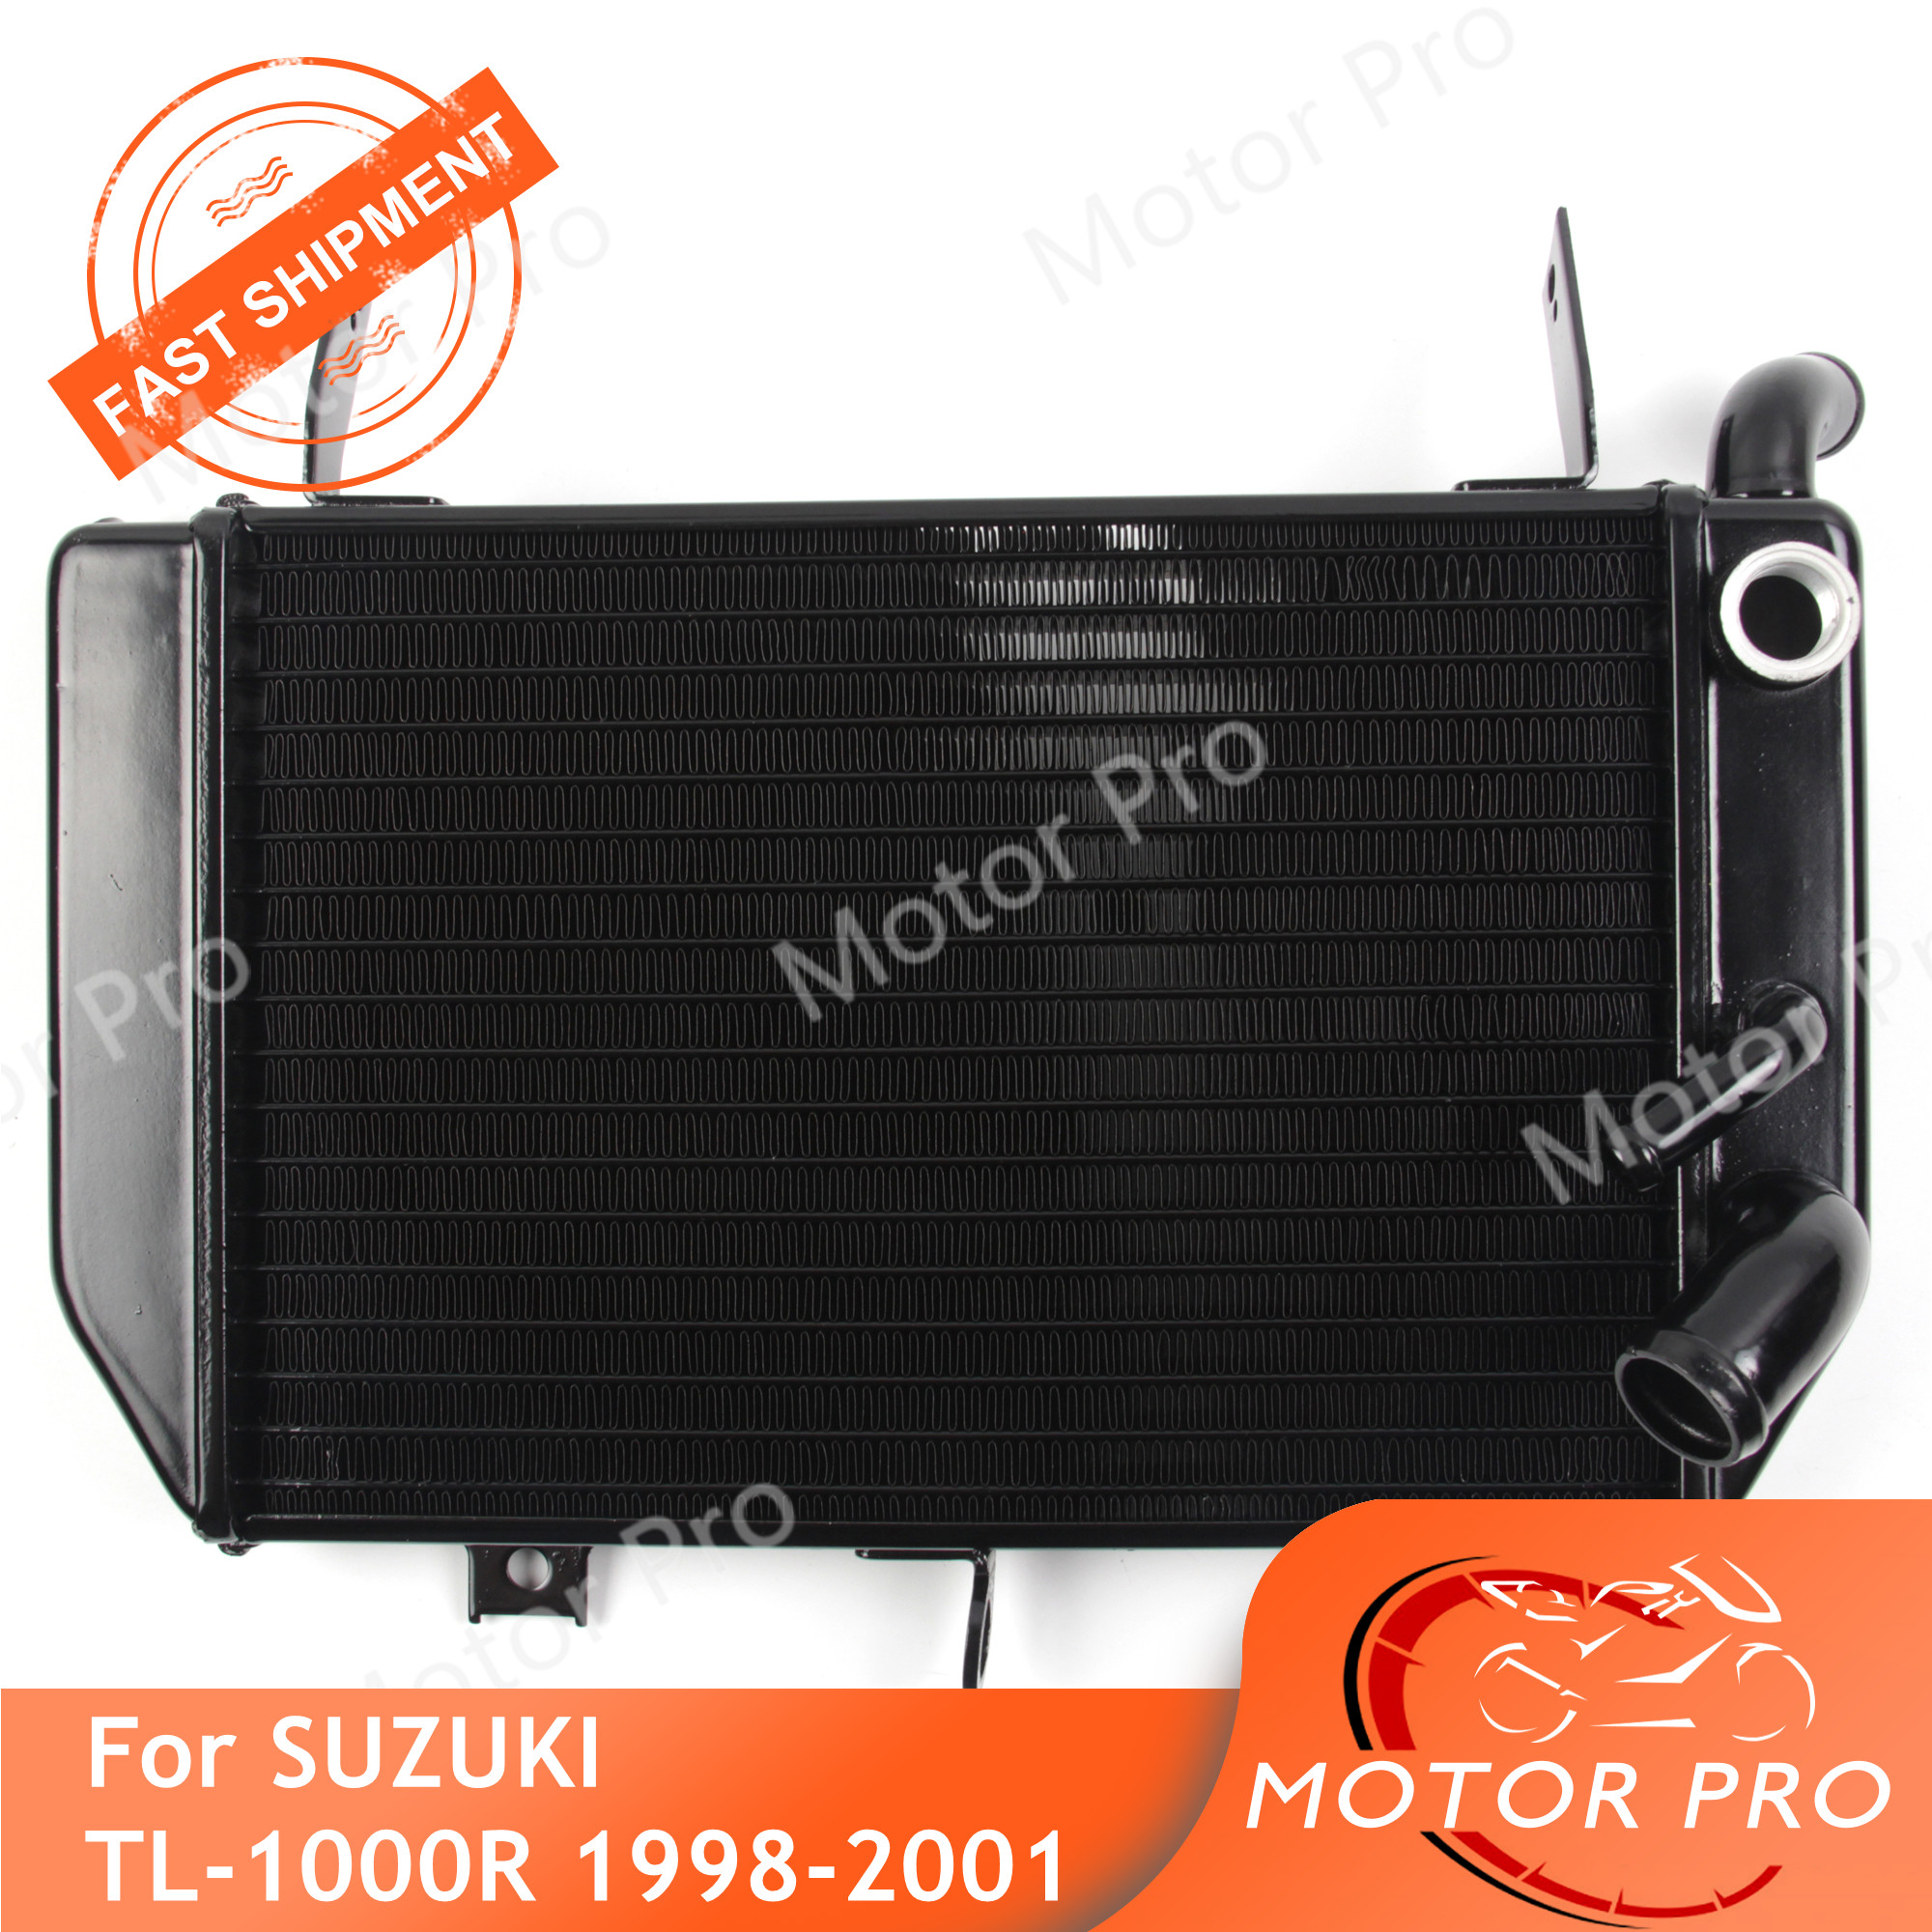 Radiator For <font><b>Suzuki</b></font> <font><b>TL1000R</b></font> 1998 1999 2000 2001 Cooling Cooler Motorcycle Accessories Replacement TL 1000 R TL1000 1000R Black image